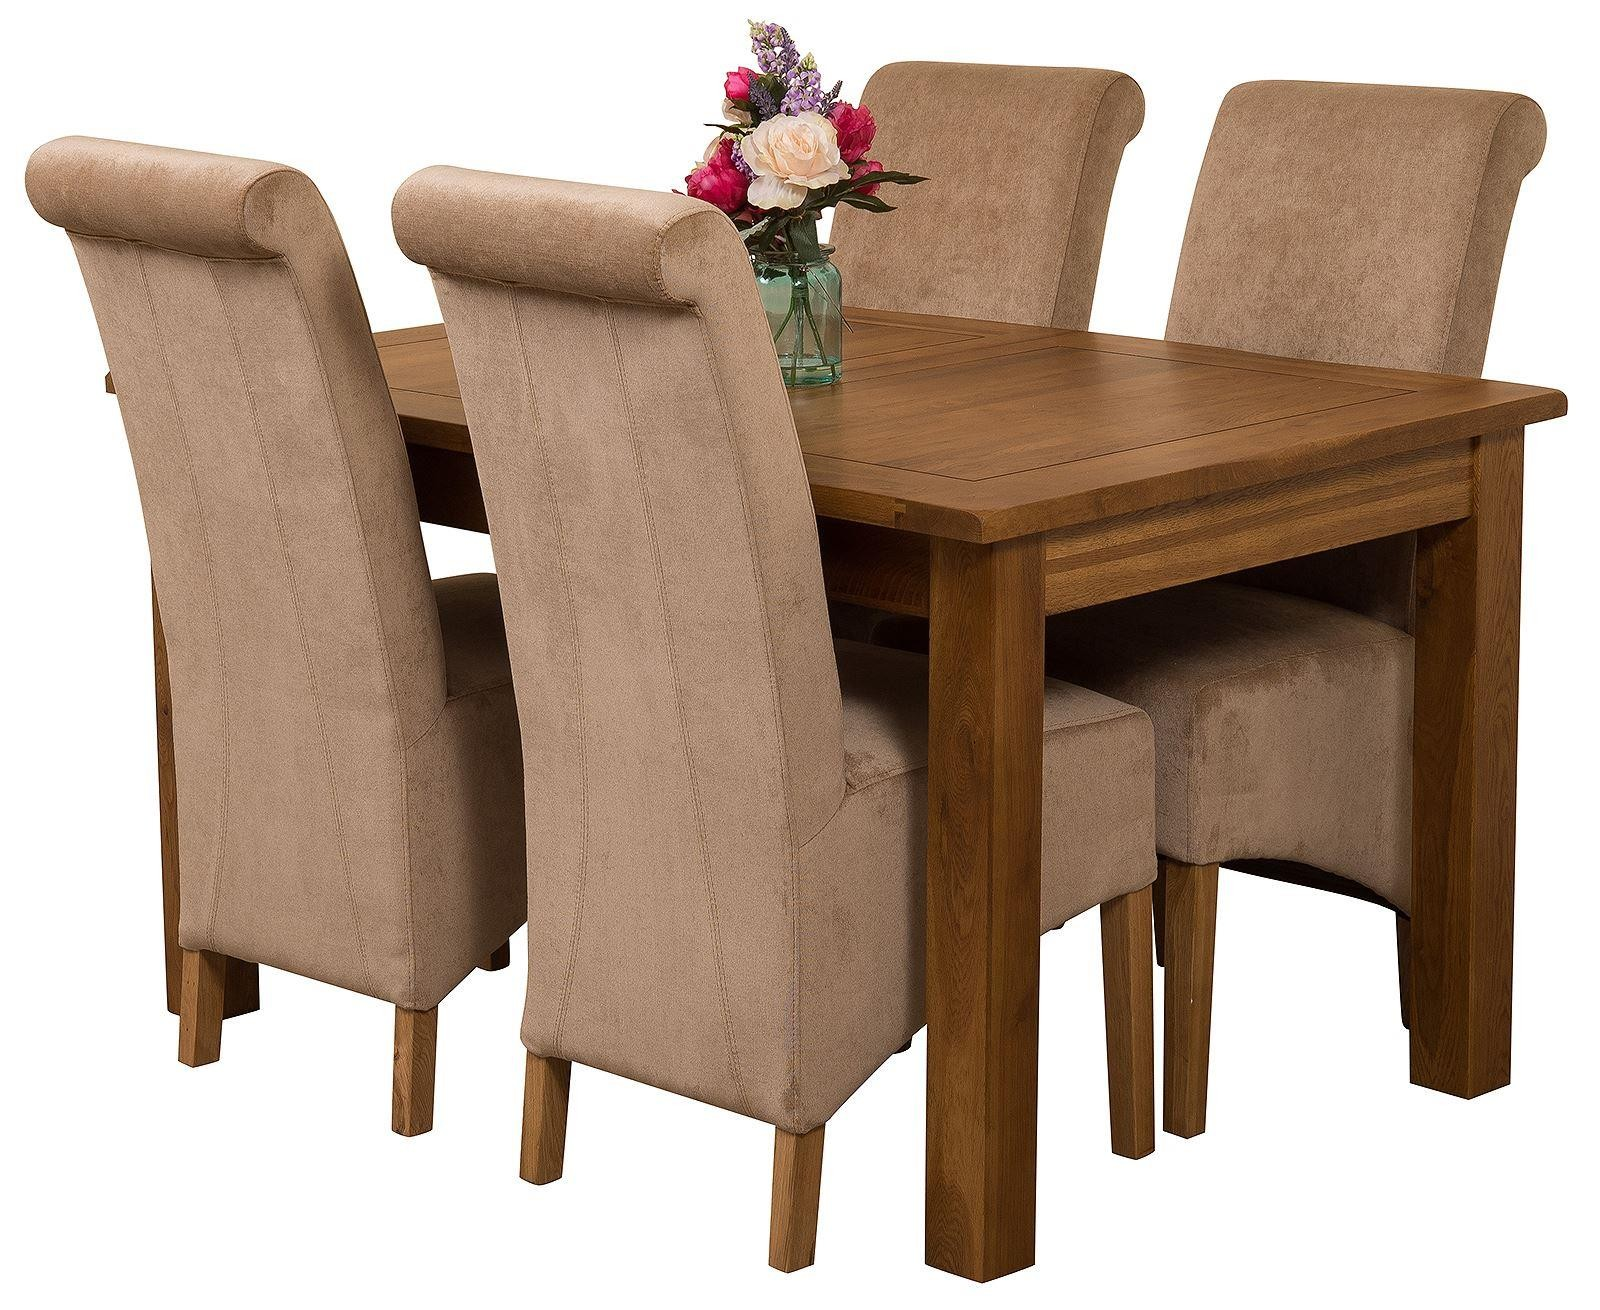 Cotswold Rustic Solid Oak 132cm-198cm Extending Farmhouse Dining Table with 4 Montana Dining Chairs [Beige Fabric]